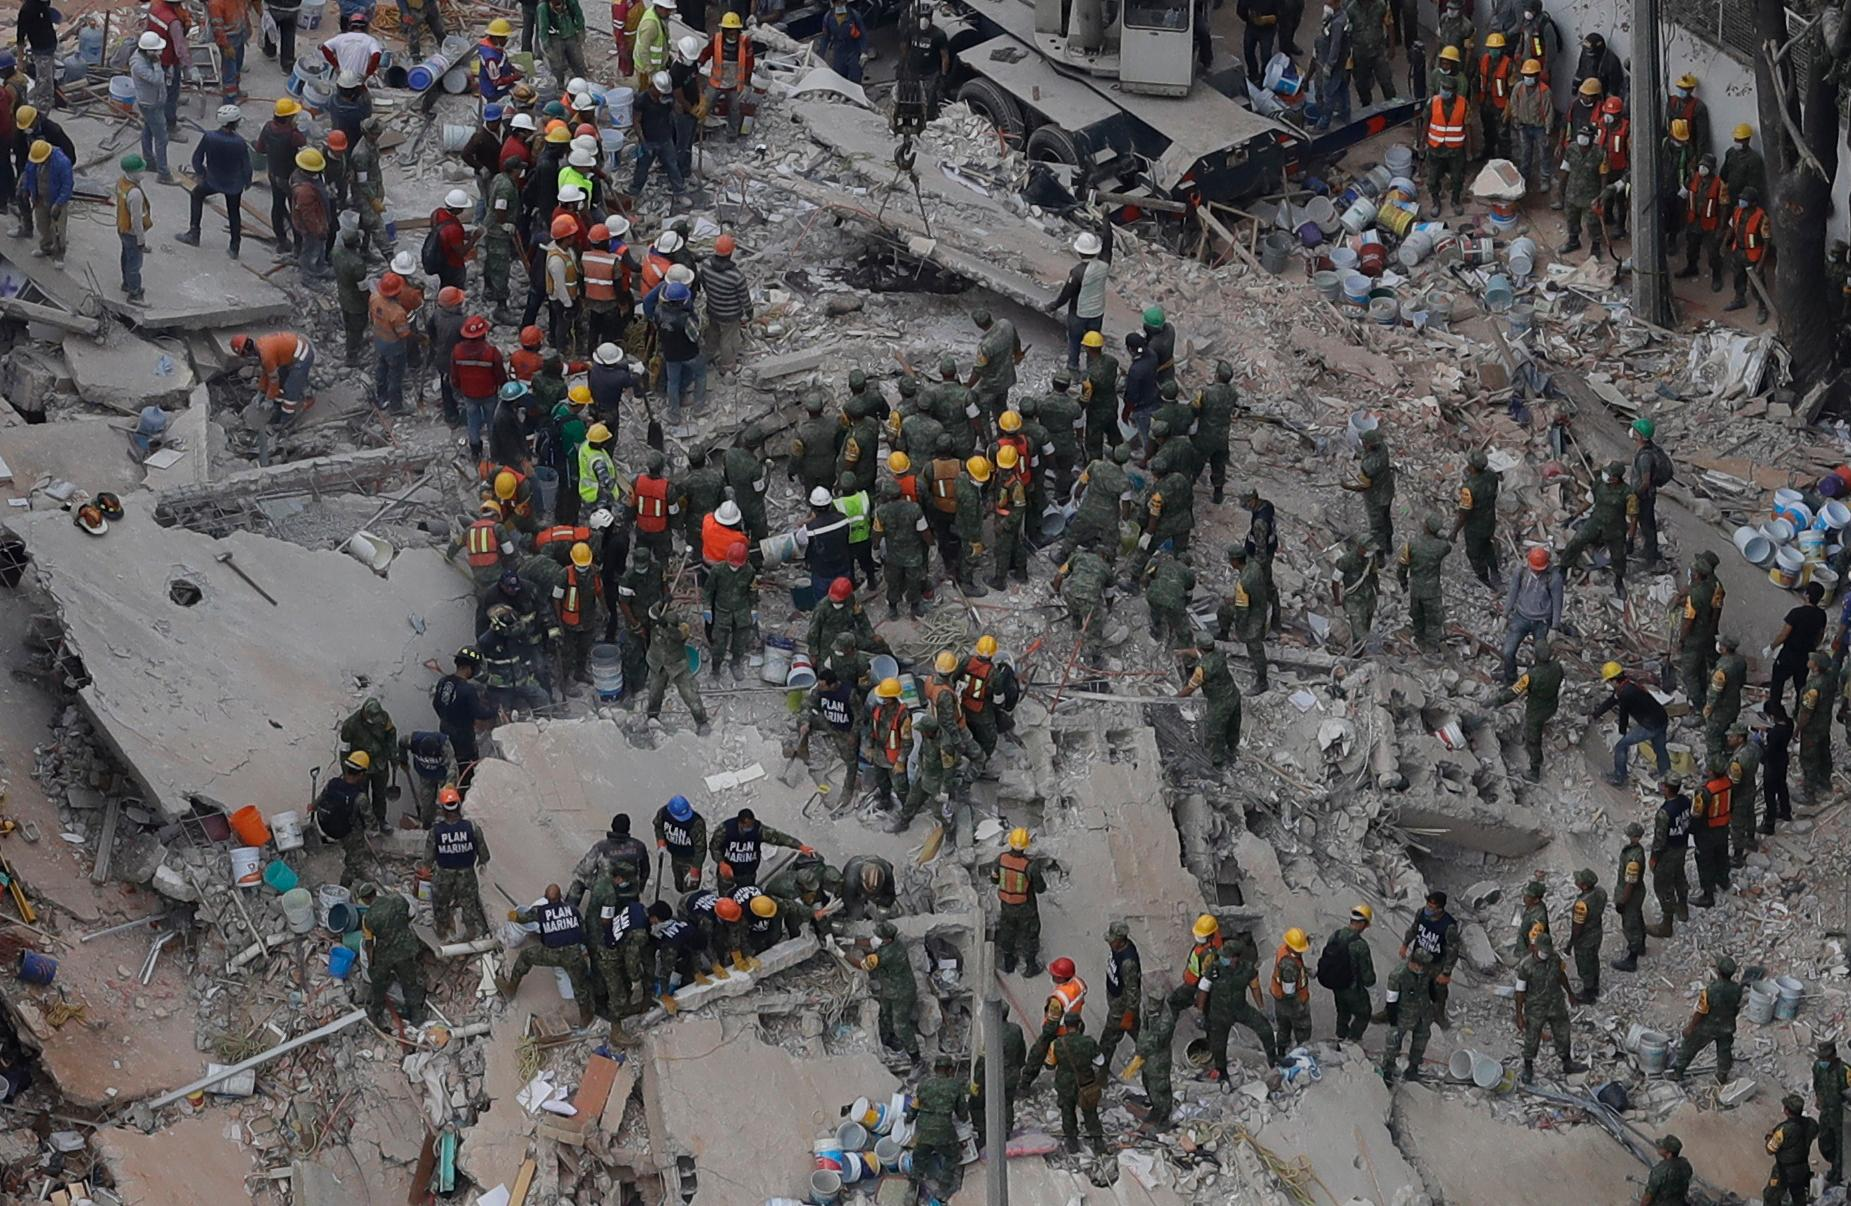 Rescue workers remove rubble as they search for people trapped inside a collapsed building in the Del Valle area of Mexico City, Wednesday, Sept. 20, 2017. Mexicans across the city are digging through collapsed buildings, trying to save people trapped in debris under schools, homes and businesses, toppled by a 7.1 earthquake that killed more than 200 people. (AP Photo/Rebecca Blackwell)